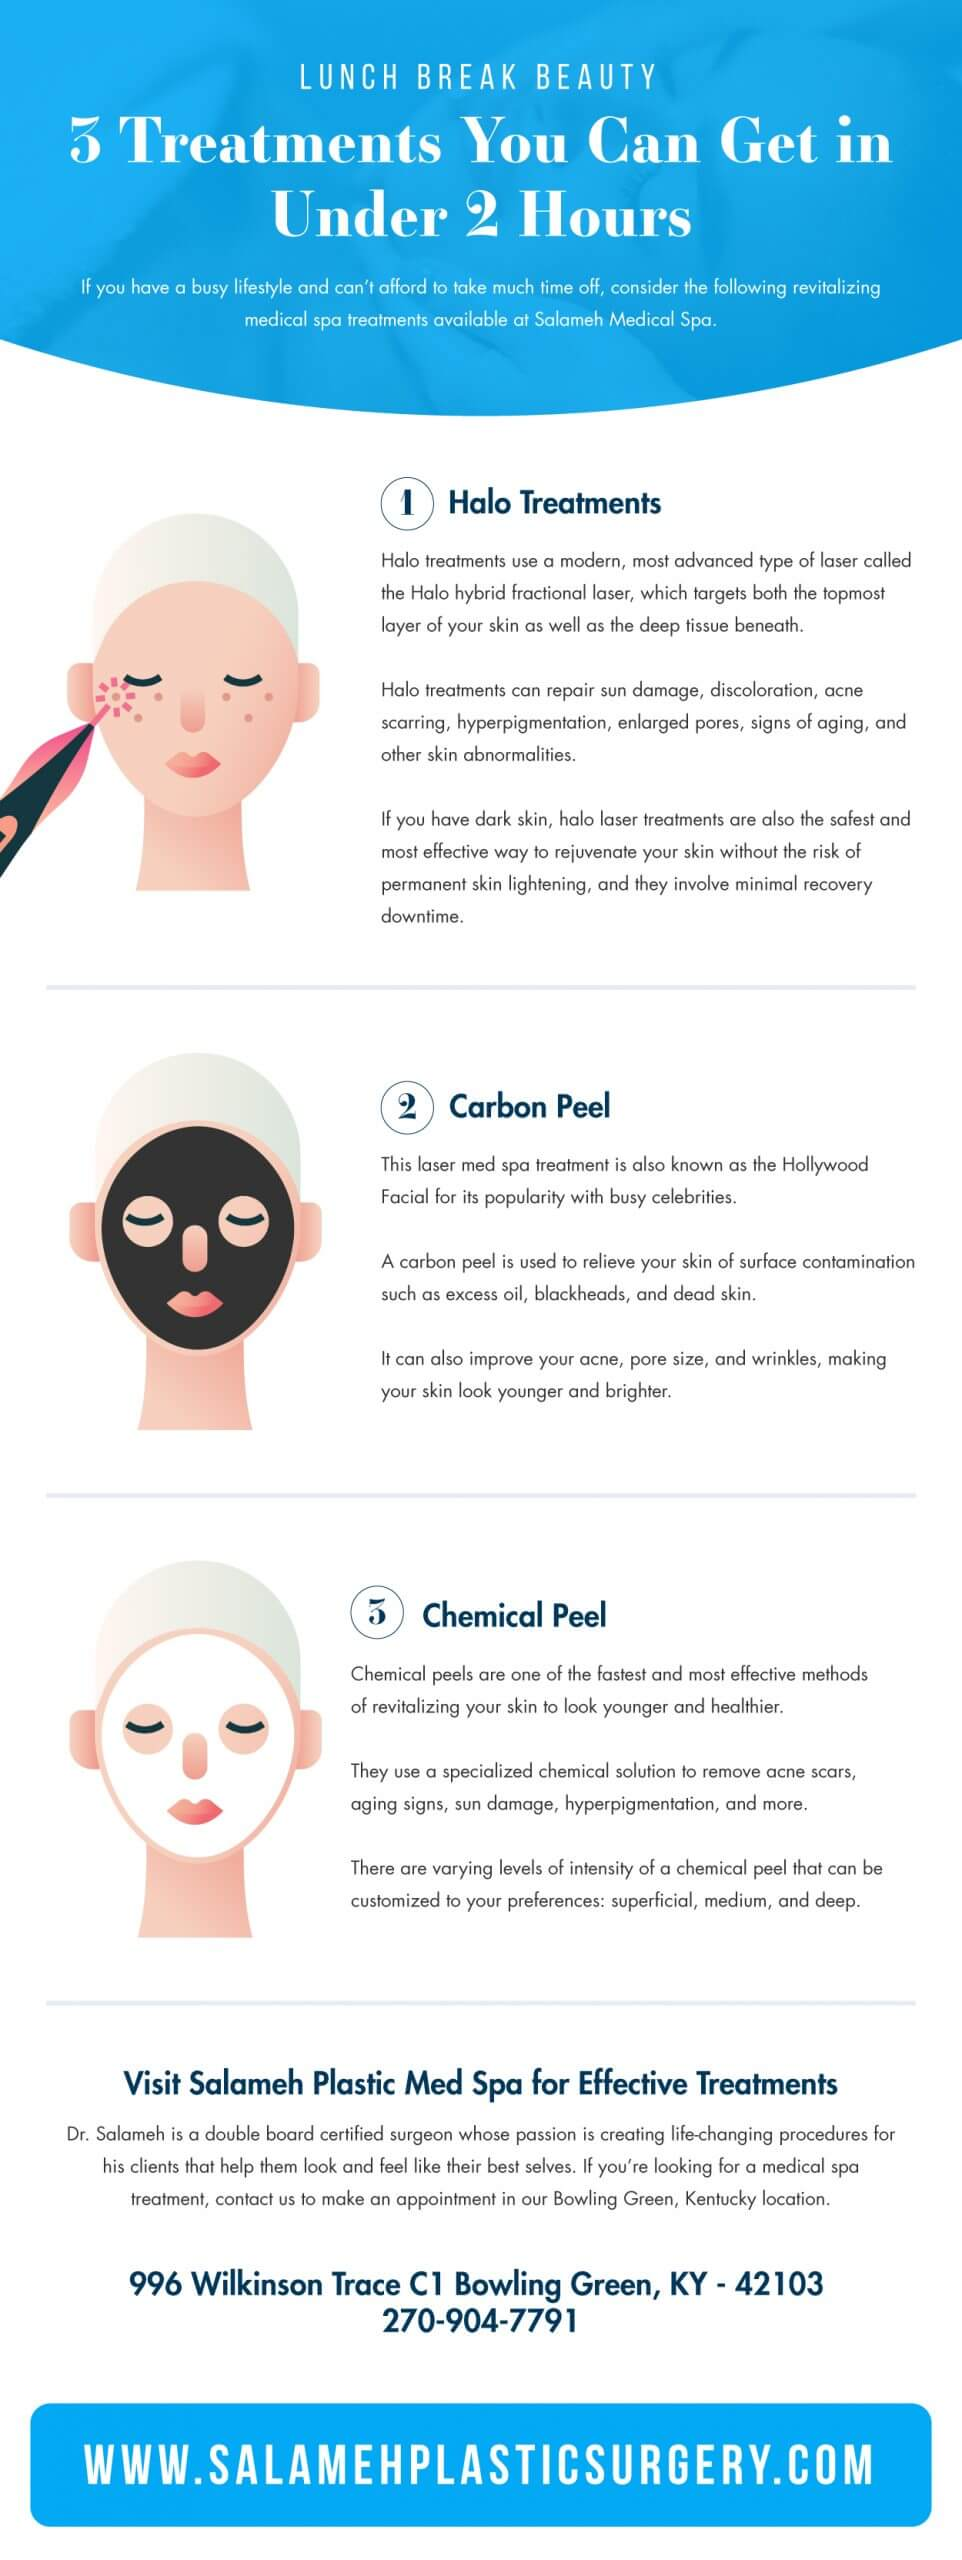 infographic featuring 3 lunch break beauty treatments